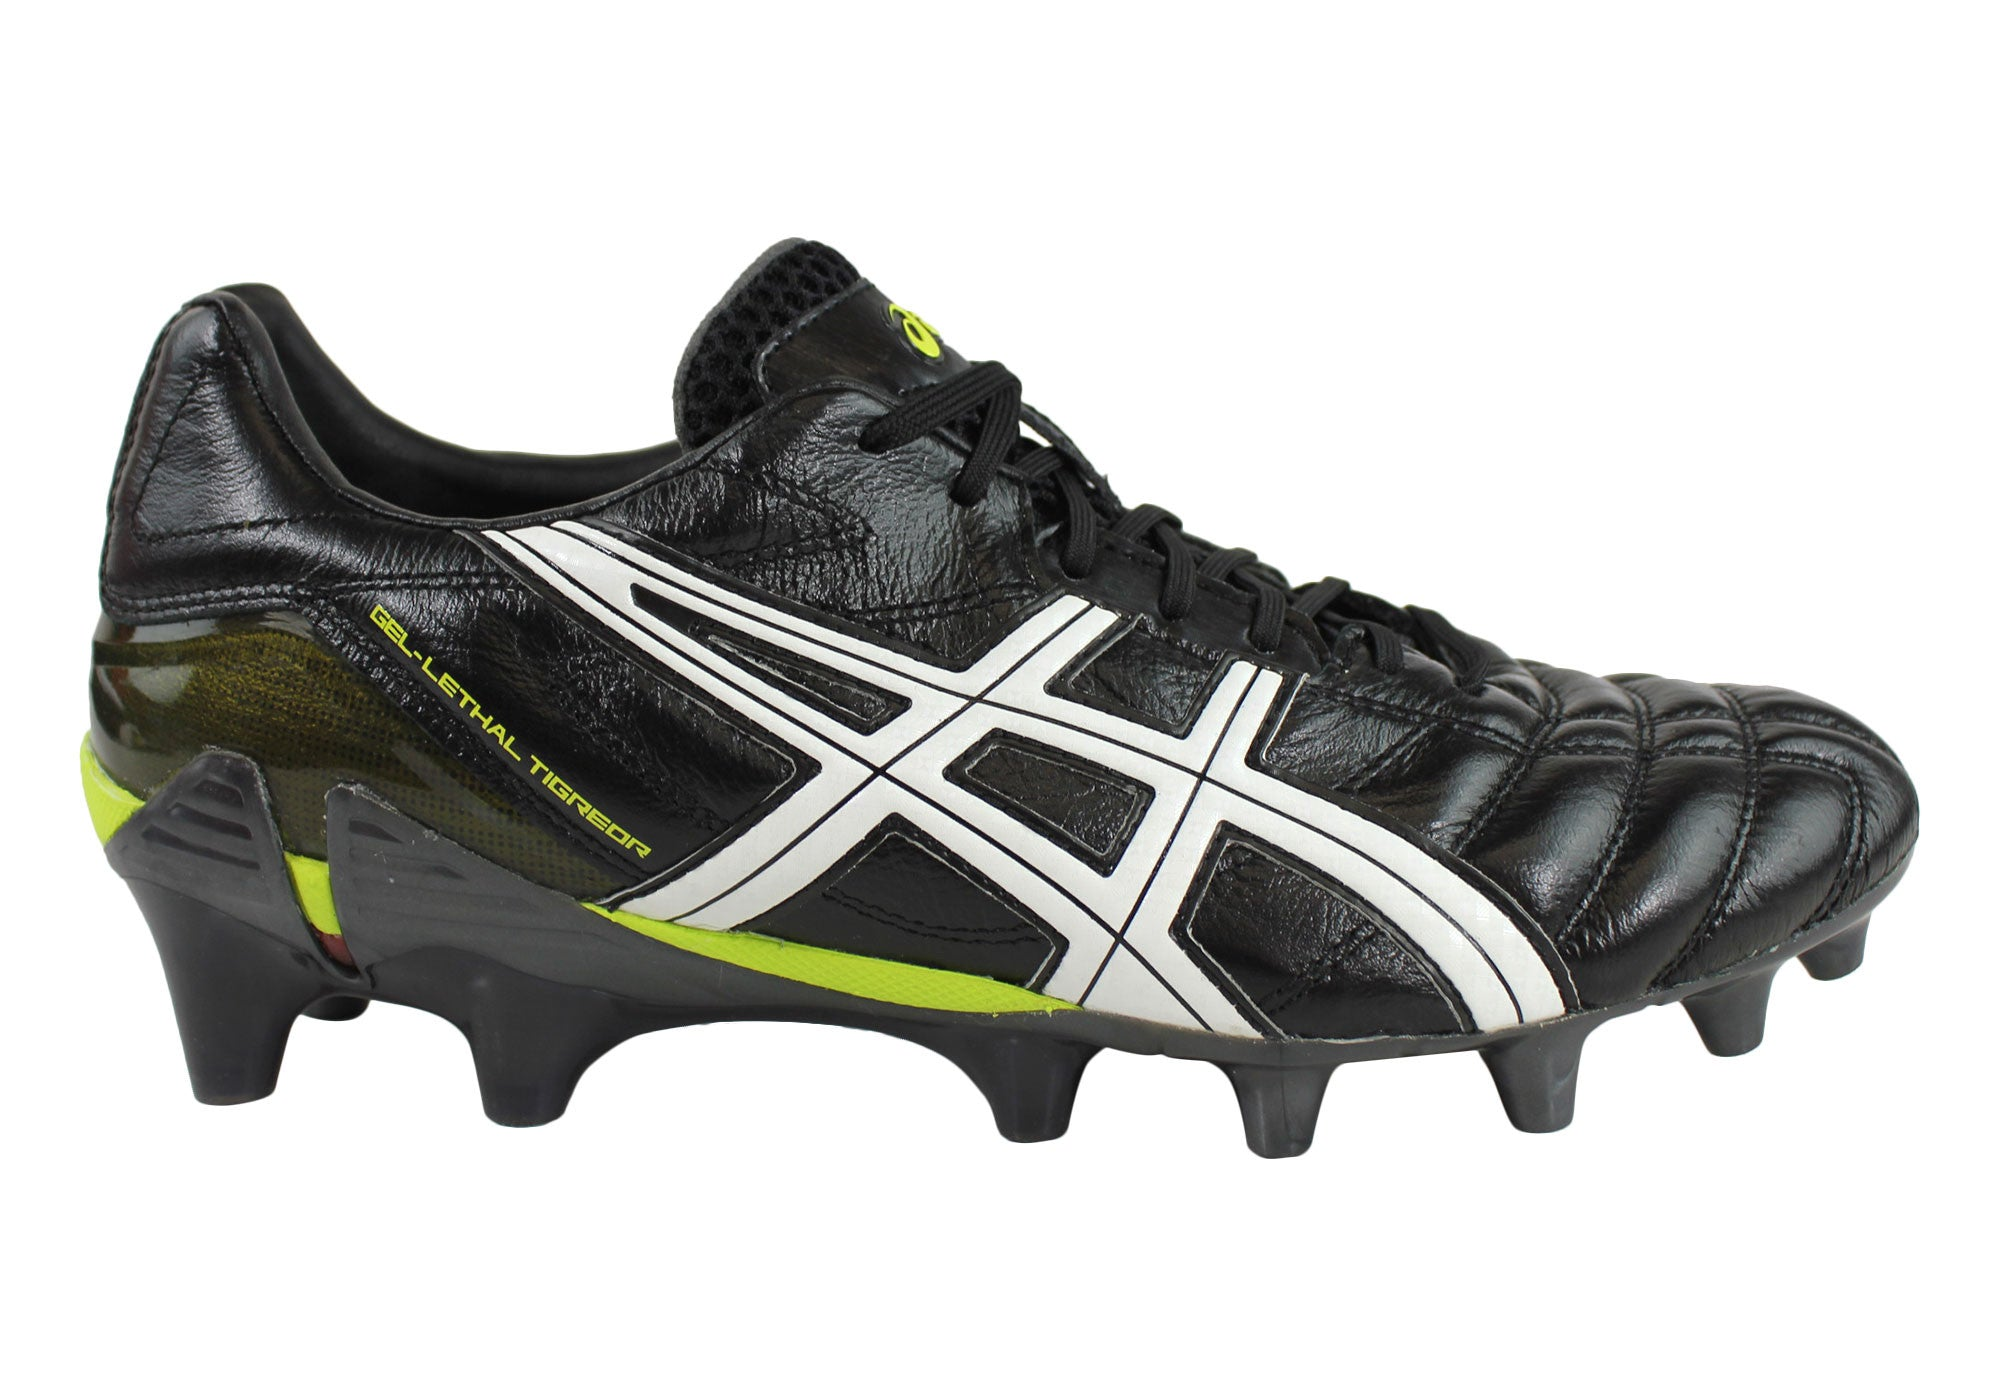 Asics Mens Lethal Tigeror 7 IT Leather Football Soccer Rugby Boots | Brand House Direct